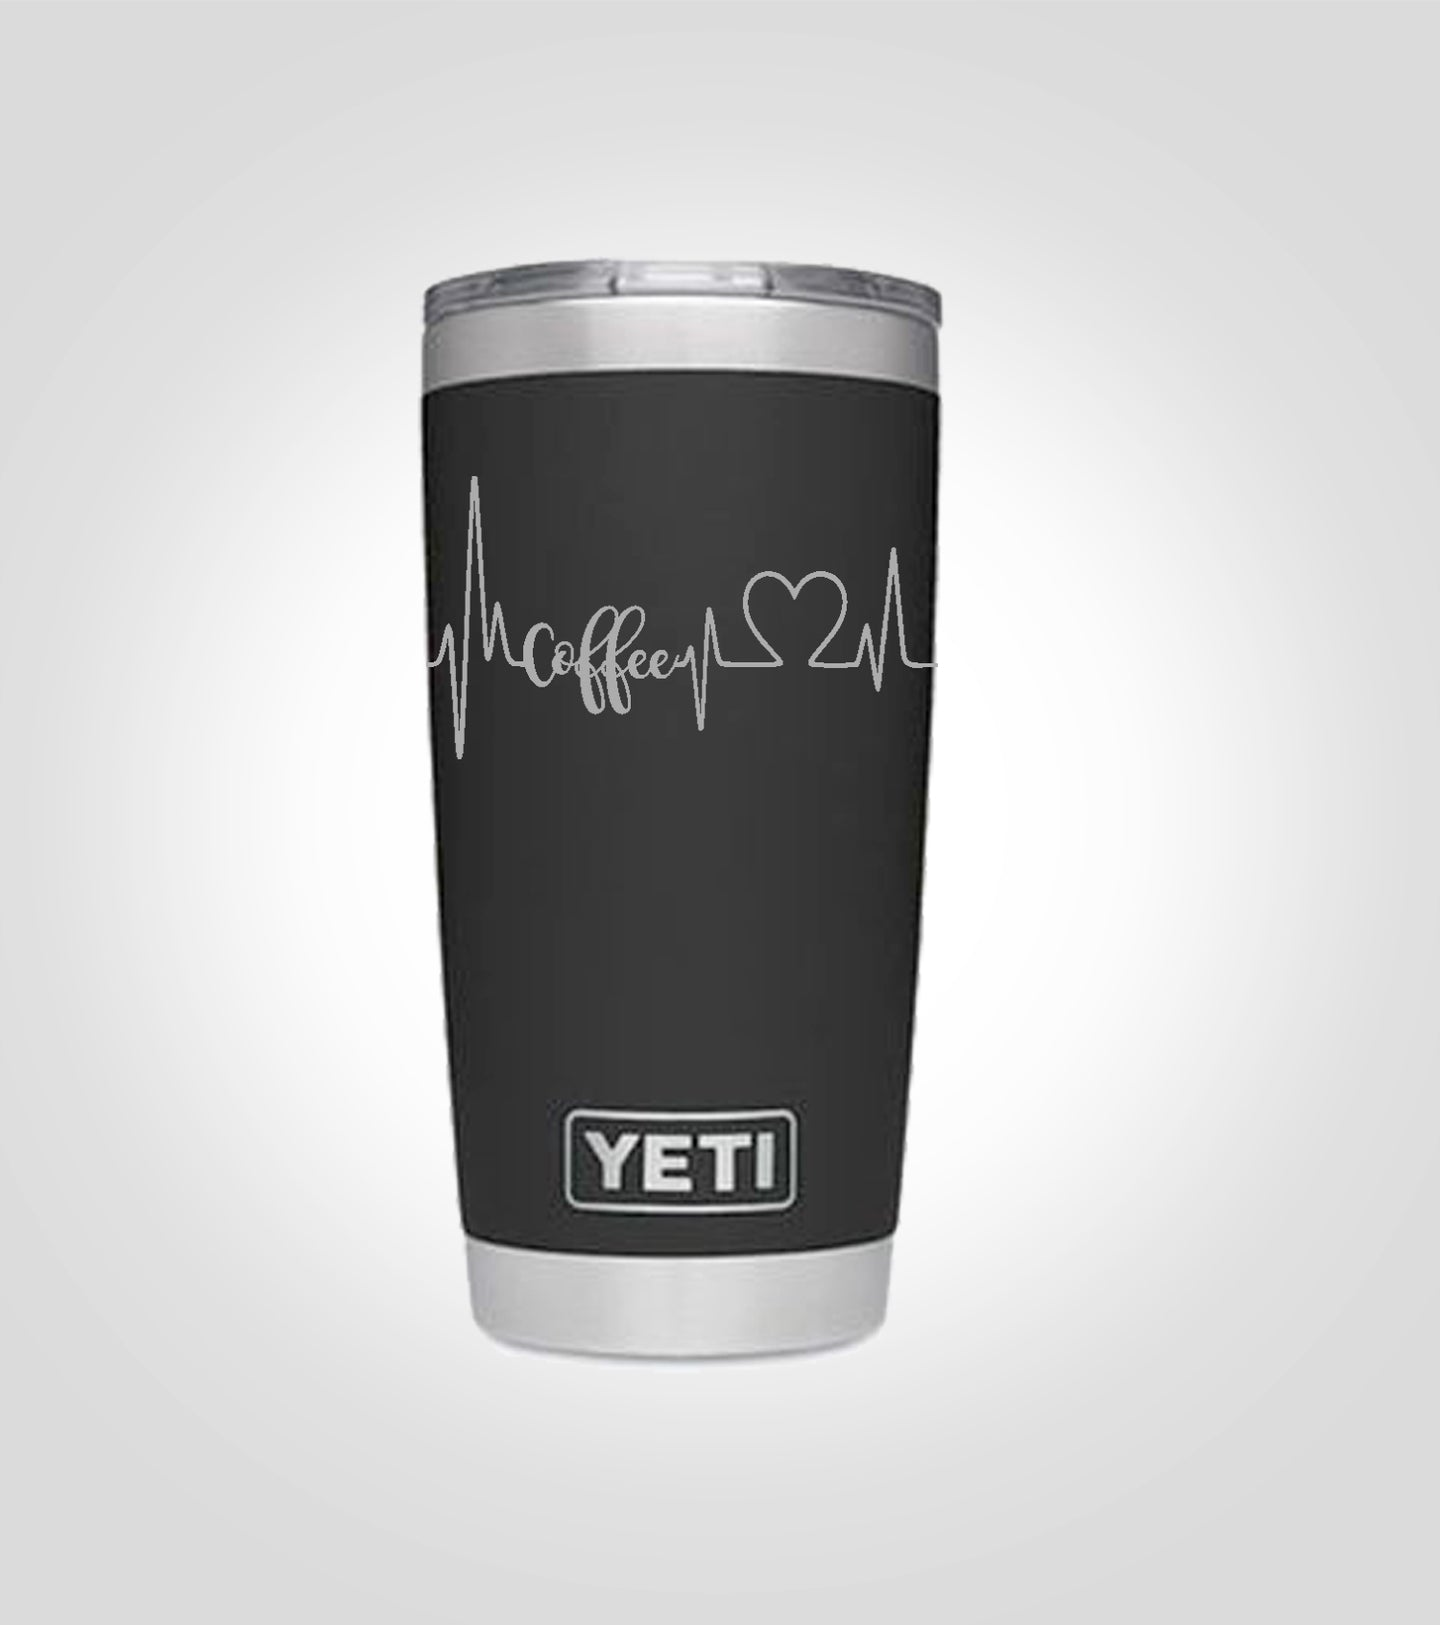 Yeti 20oz. Tumbler | Coffee